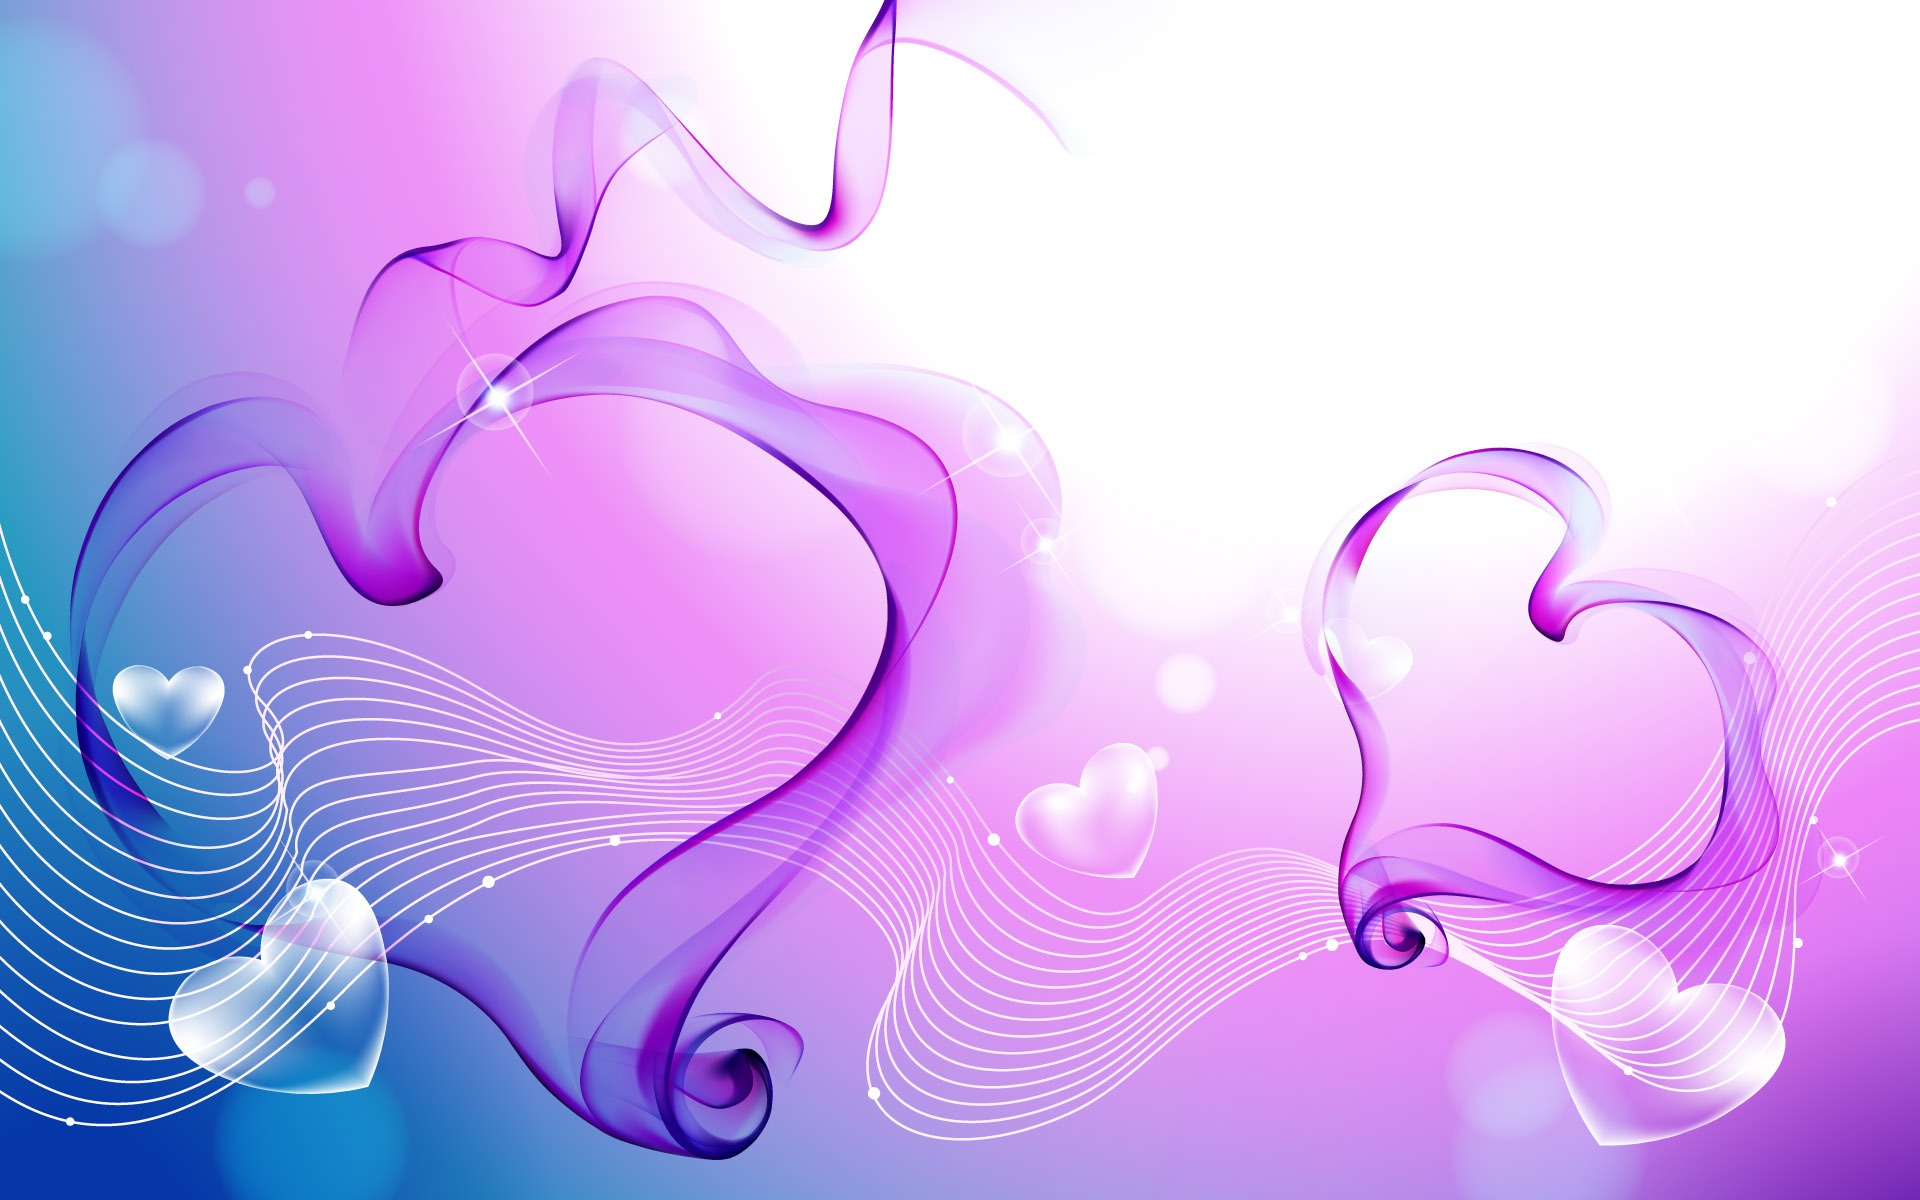 Valentine s Day Love Theme Wallpapers (3) #7 - 1920x1200 ...